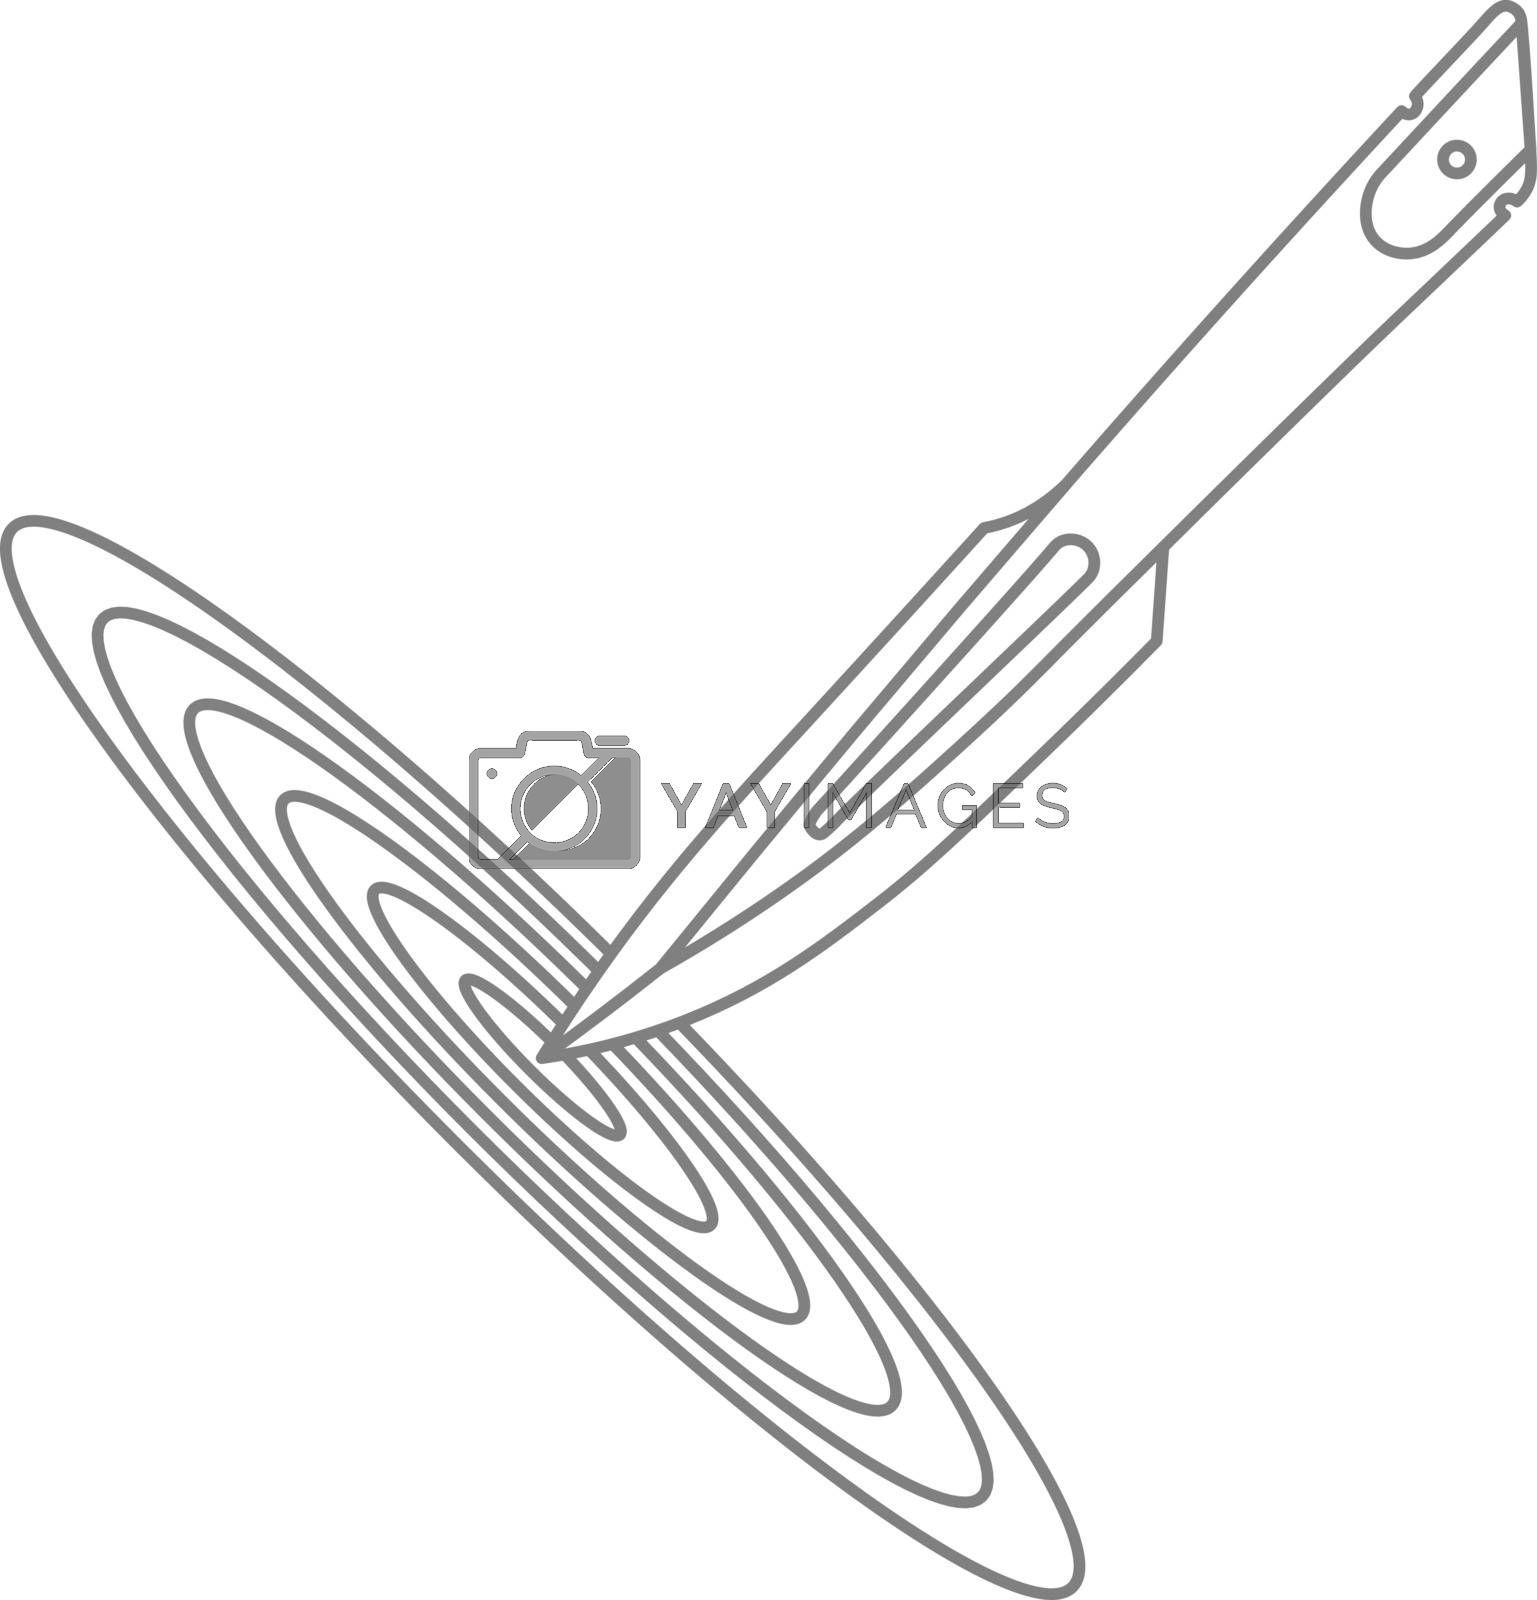 Simple grey contour illustration of throwing knife in the target